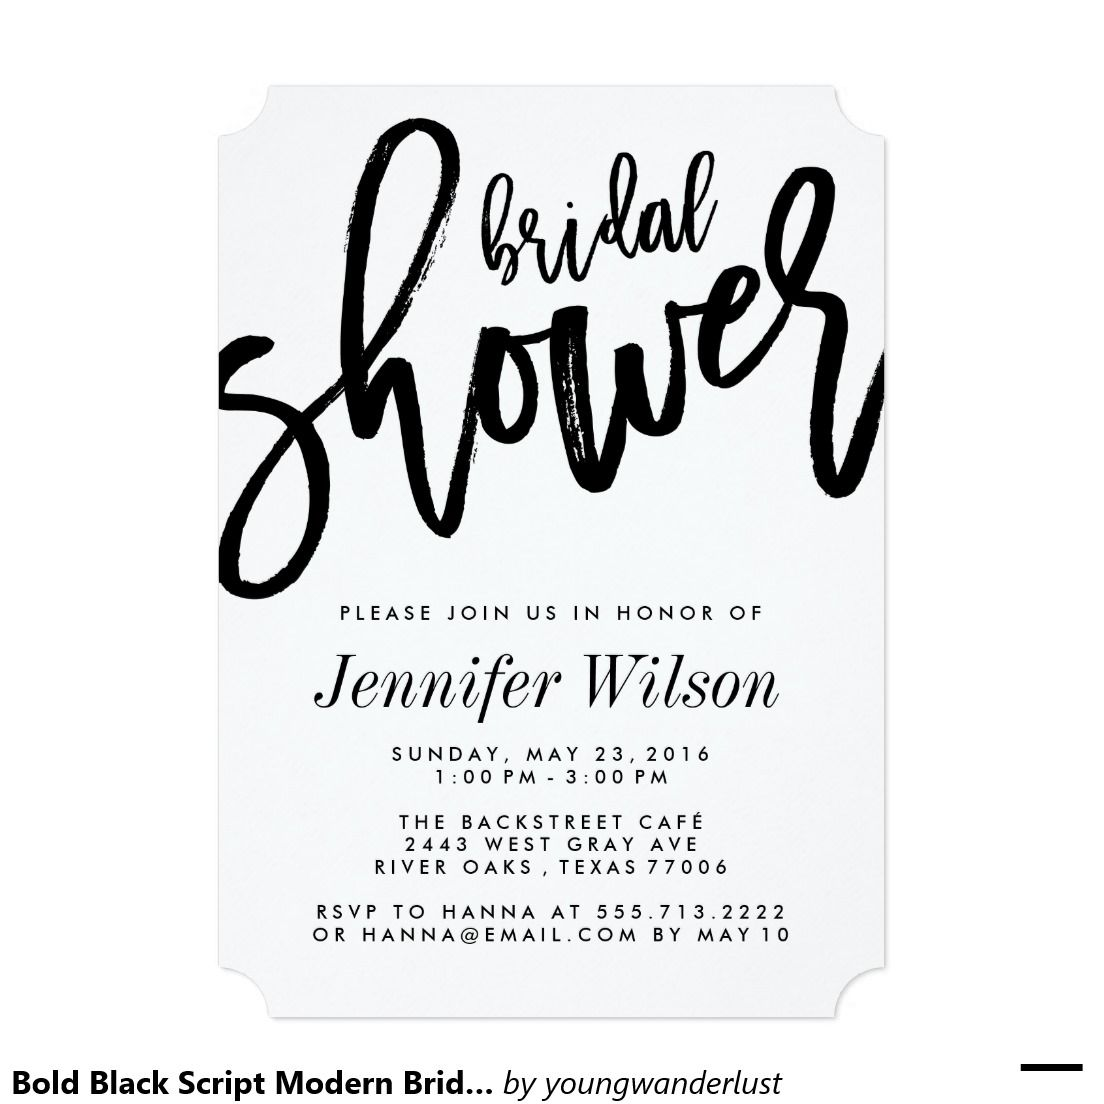 Bold Black Script Stylish Modern Bridal Shower Invitations For The Sophisticated Bride To Be